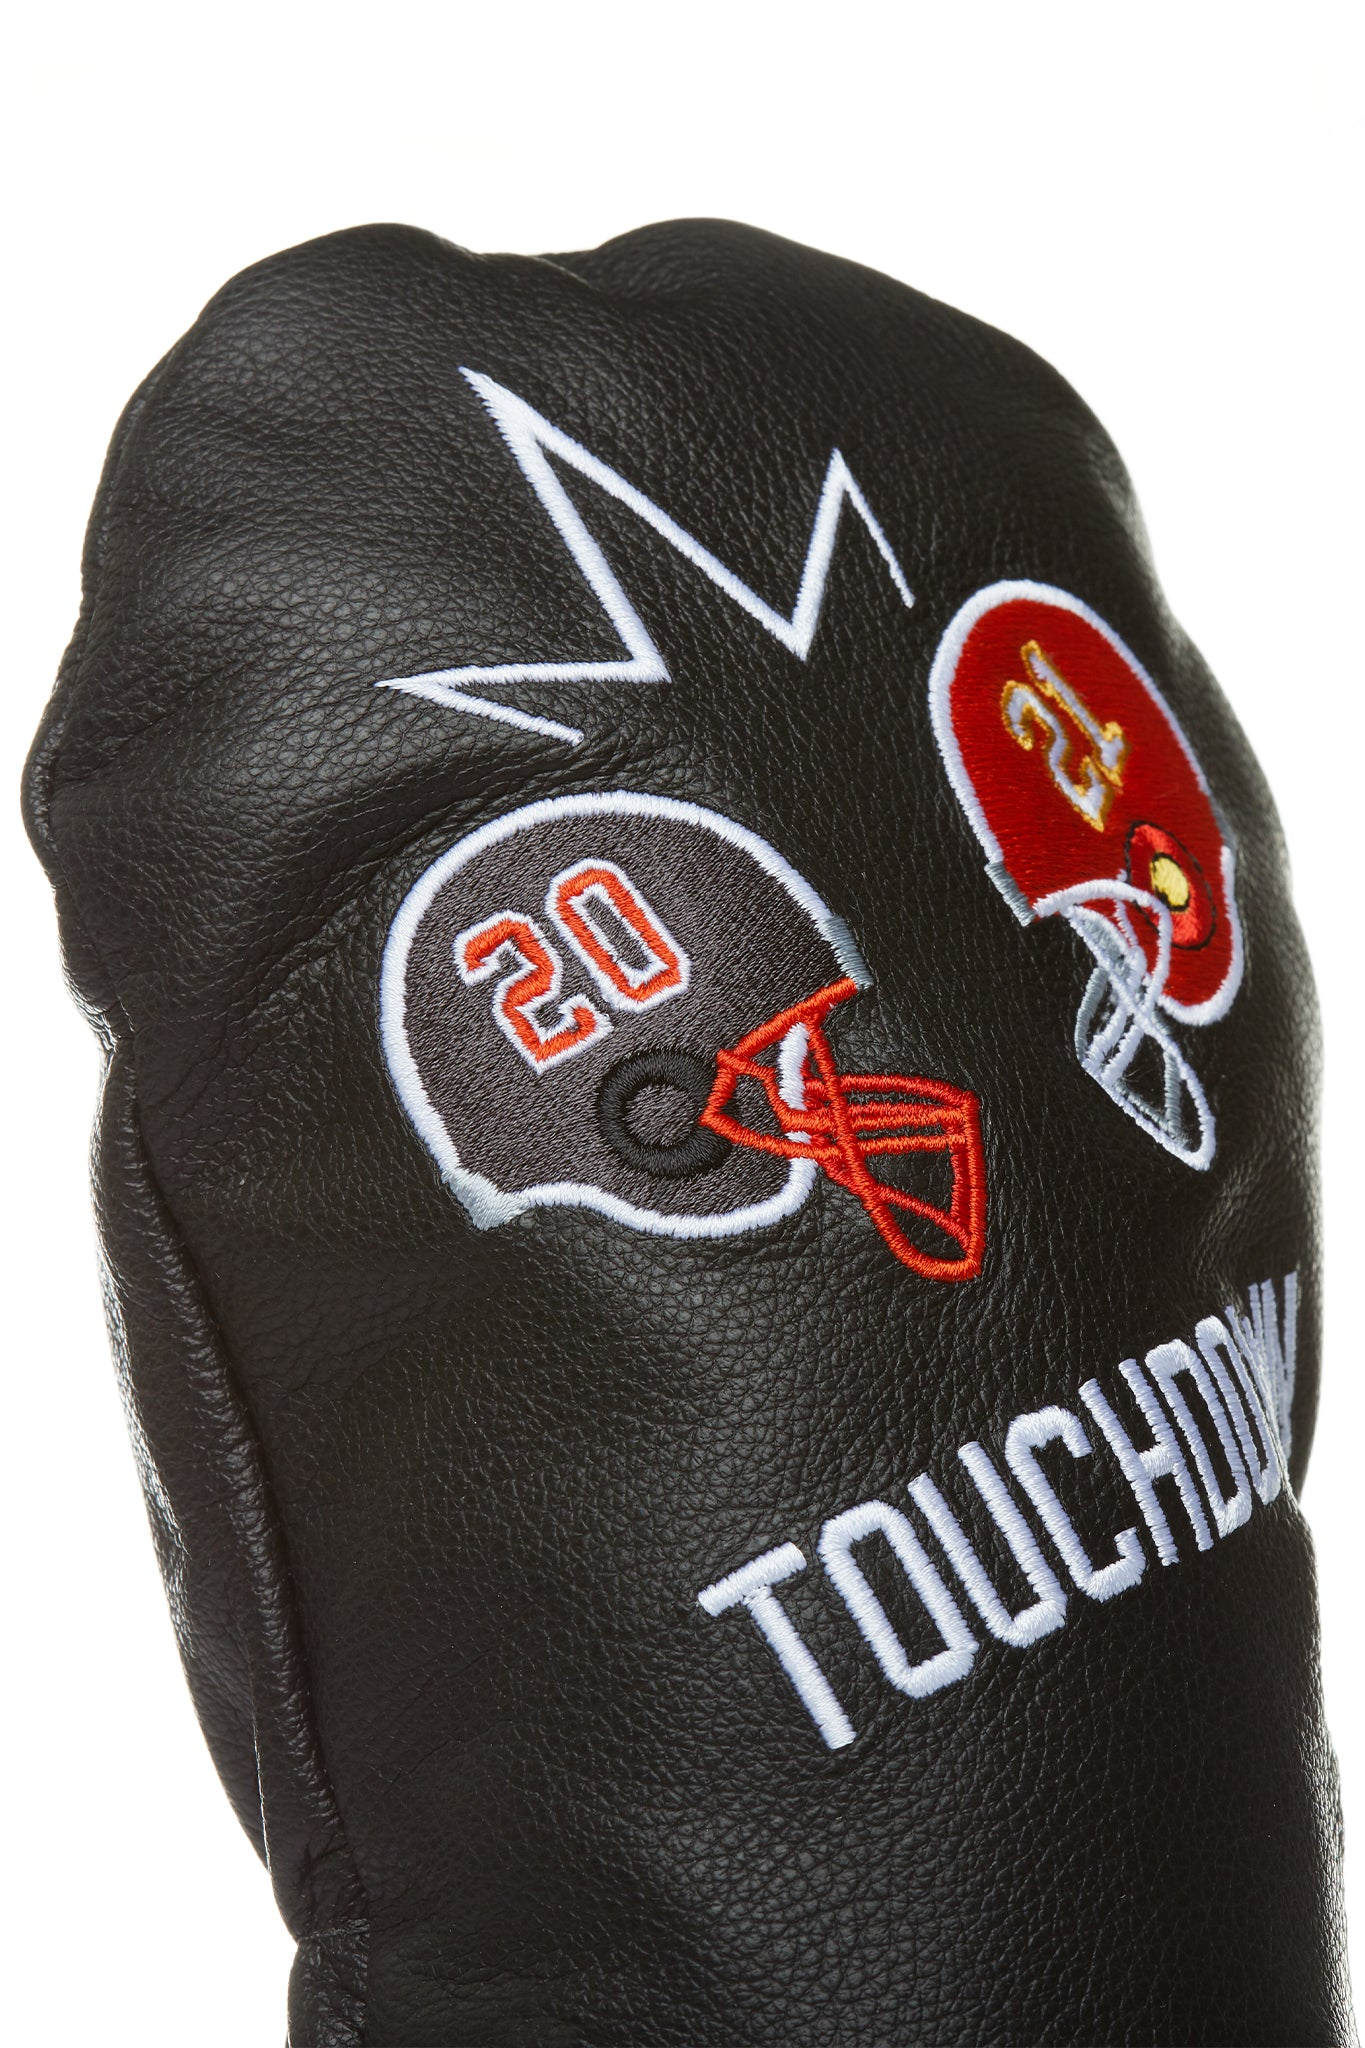 Limited Edition Game Day Headcover